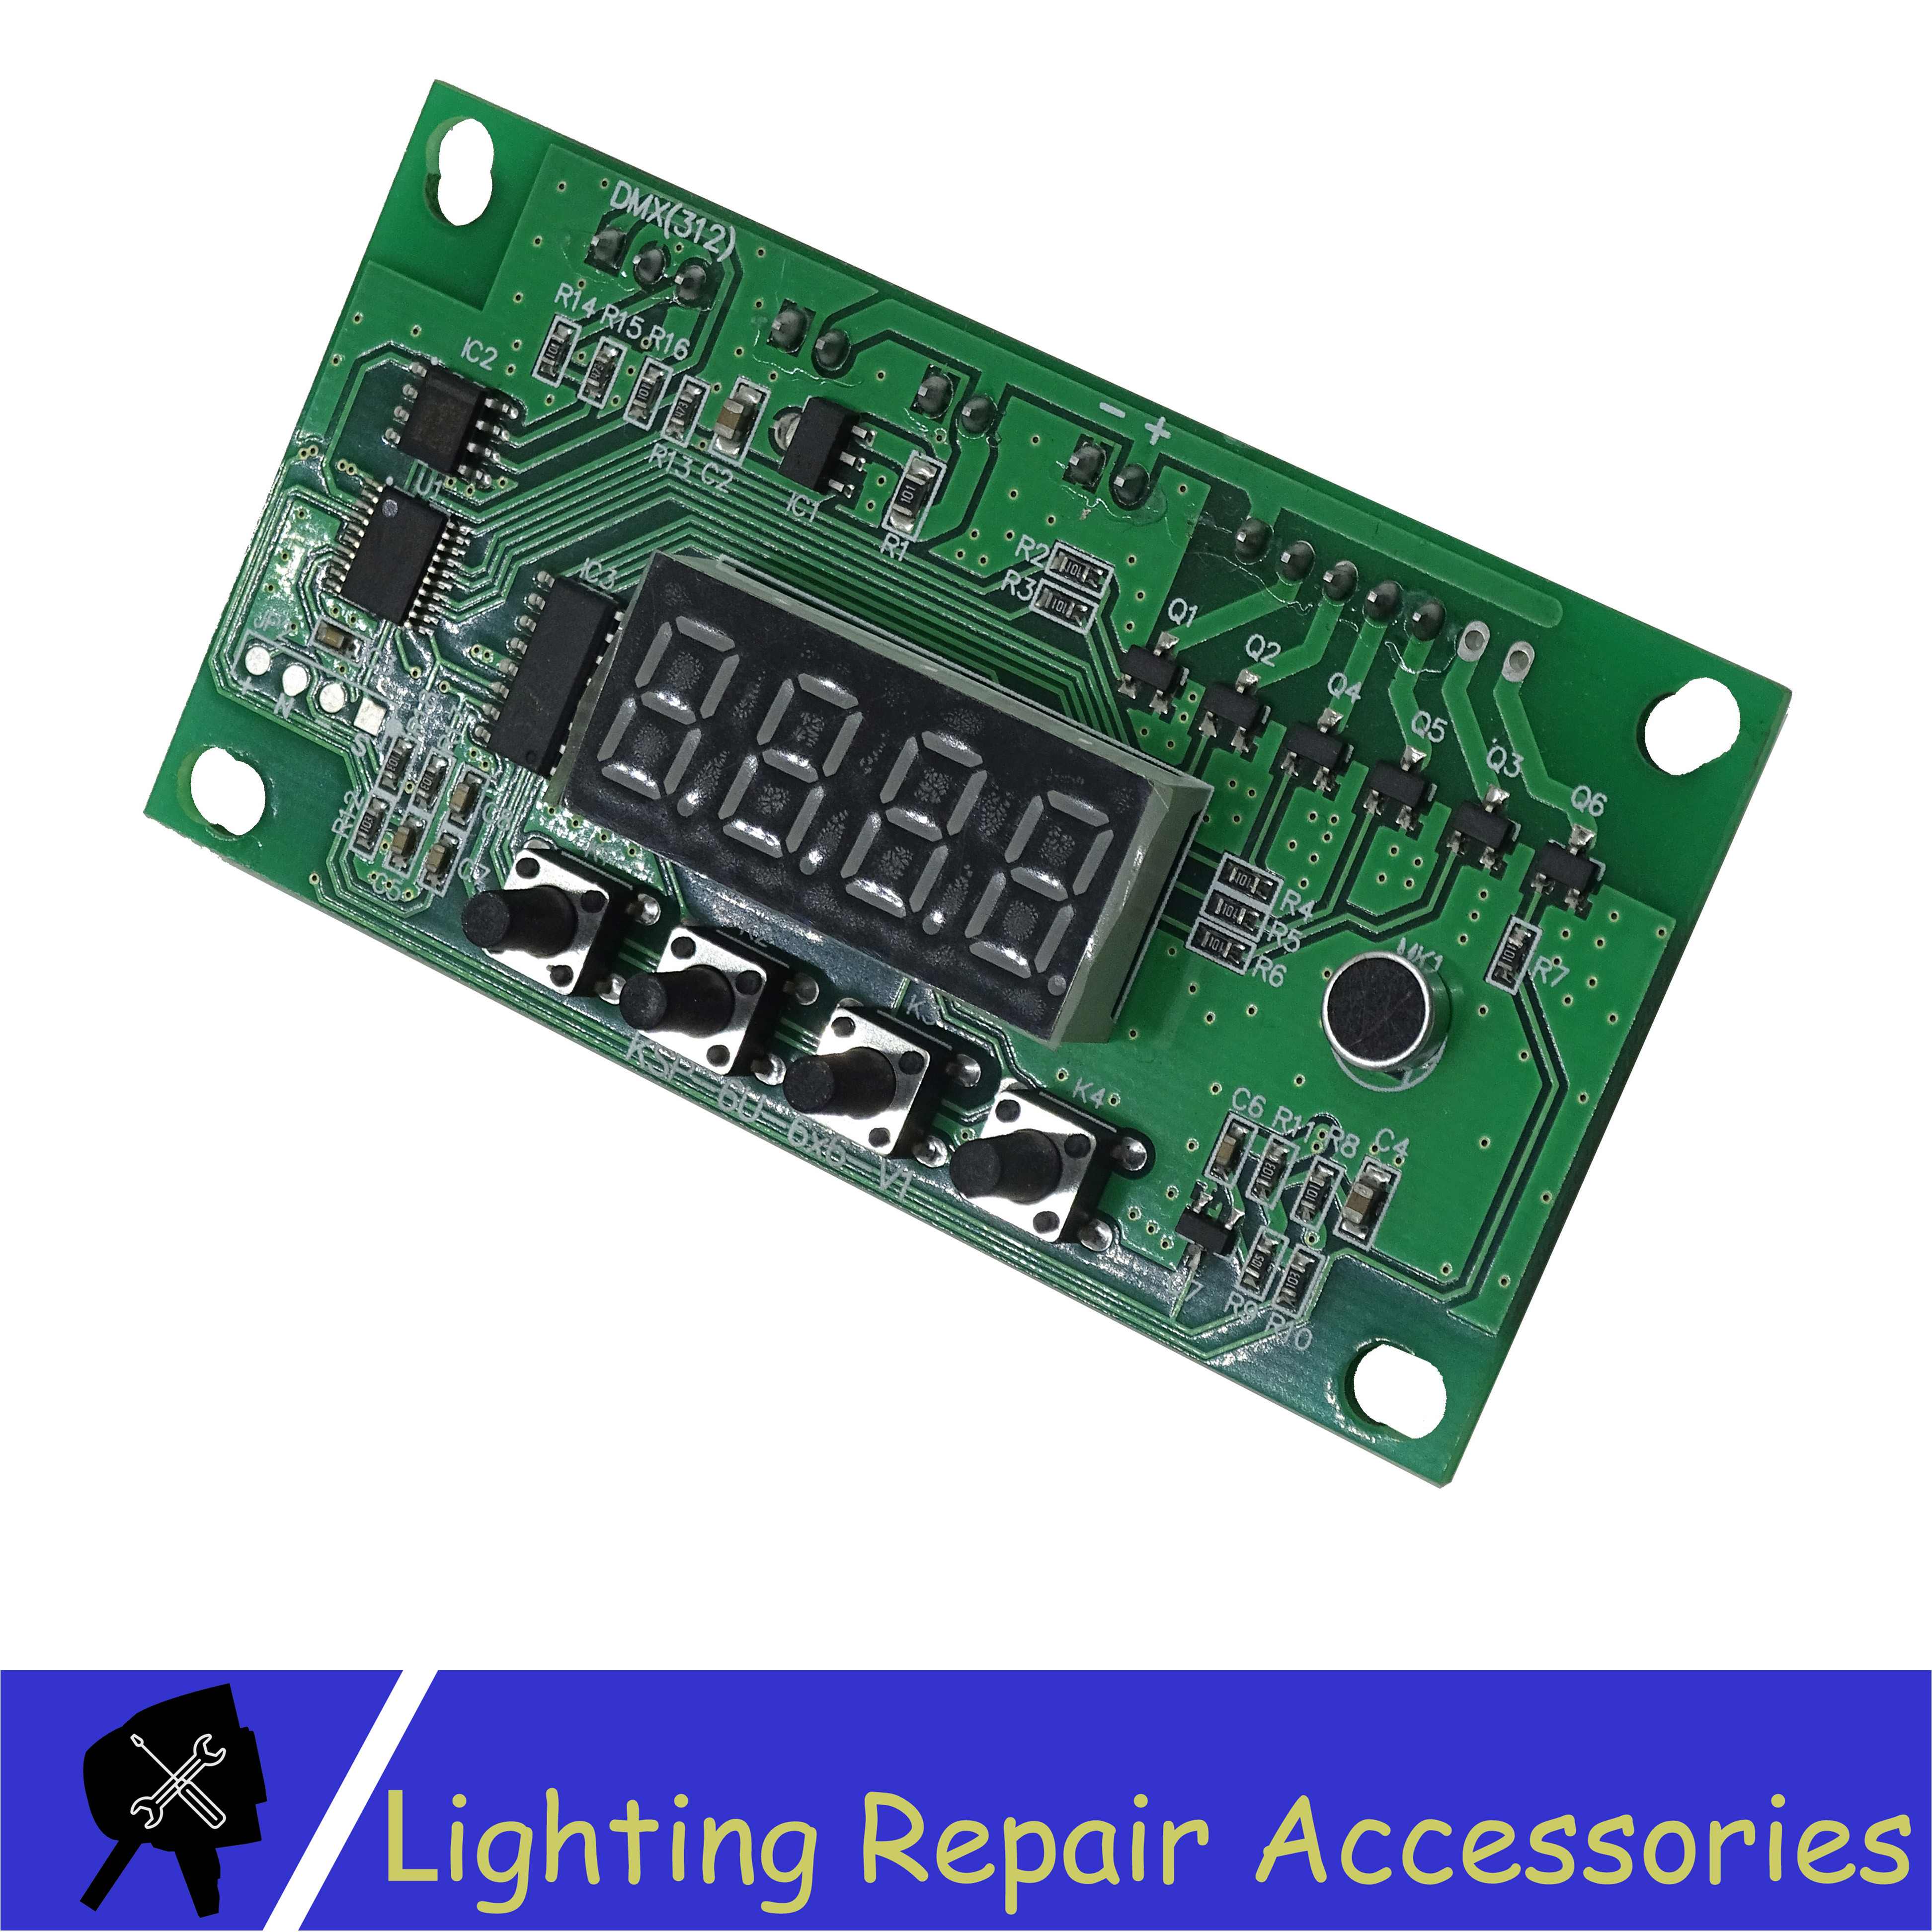 Voltage 12-36V <font><b>Par</b></font> <font><b>Led</b></font> RGBW 4in1 Motherboard 4/8 Channel 7x10w 18x3w 7x12W 6x12w 5x12w <font><b>12x12w</b></font> <font><b>LED</b></font> <font><b>PAR</b></font> Motherboard image